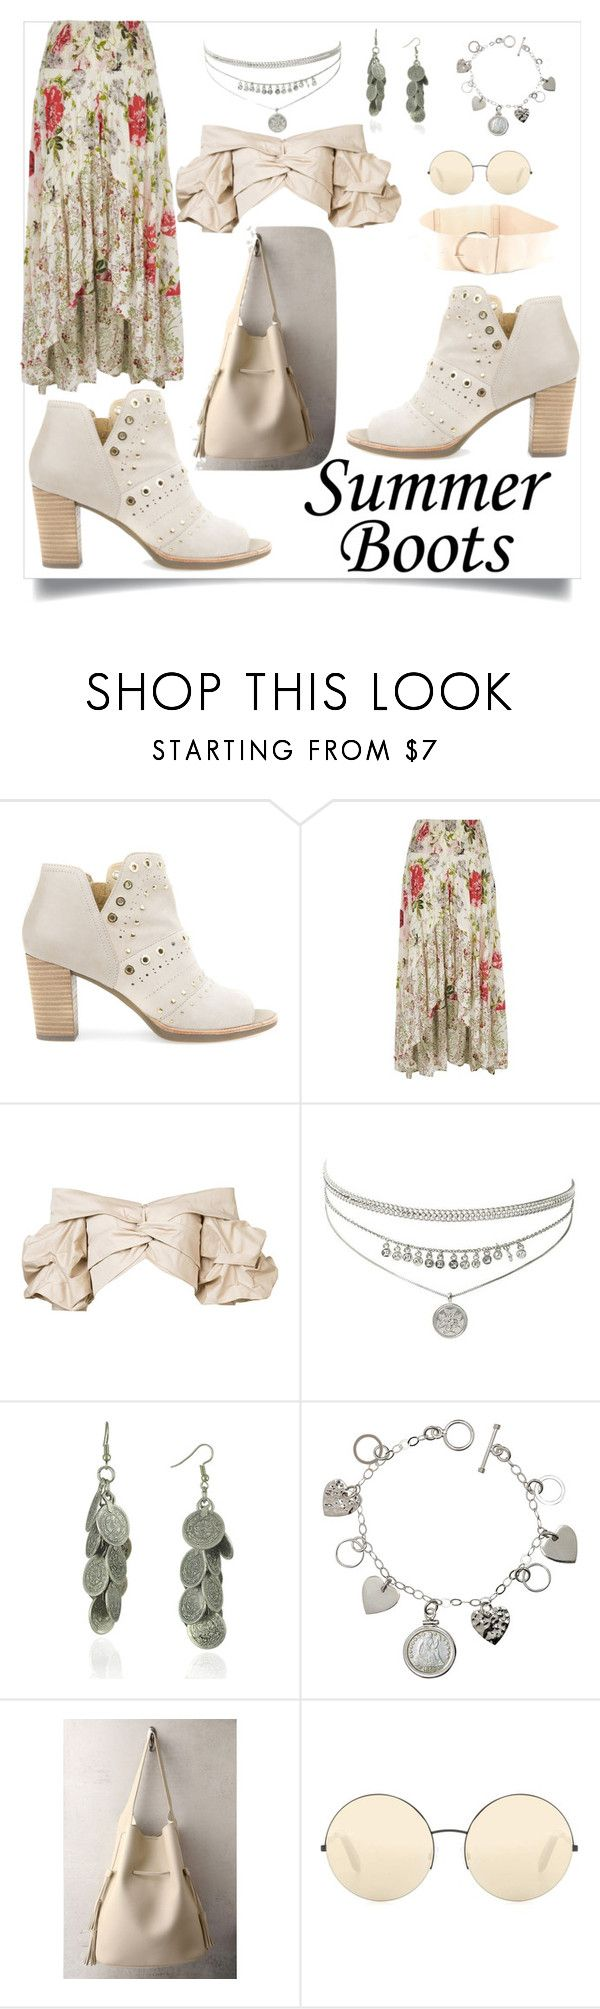 """Summertime"" by constanceee64 ❤ liked on Polyvore featuring Geox, River Island, Johanna Ortiz, WithChic, American Coin Treasures, LULUS, Victoria Beckham and Torrid"